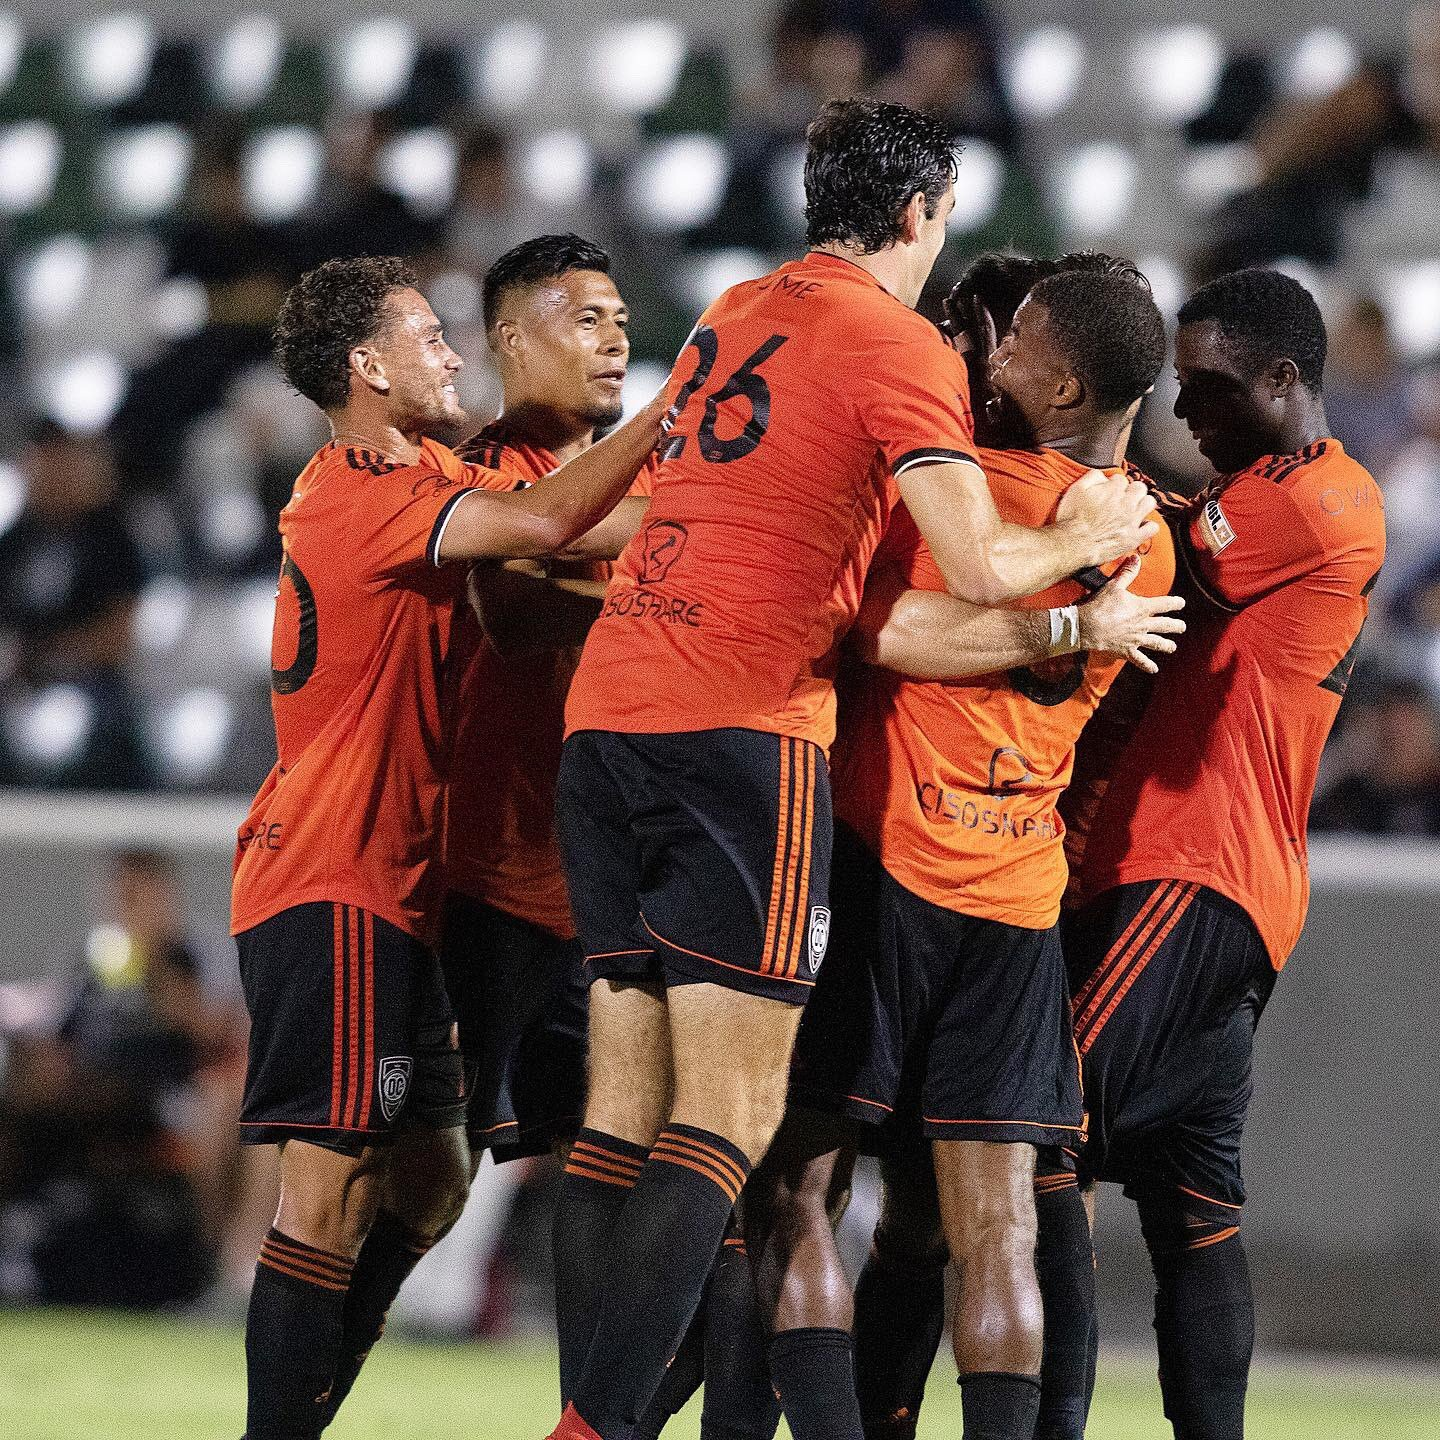 Orange County SC players celebrate after scoring a goal in their 3-1 victory over Real Monarchs on August 24, 2019 at Championship Soccer Stadiium. |  Photo courtesy of Orange County SC/Liza Rosales